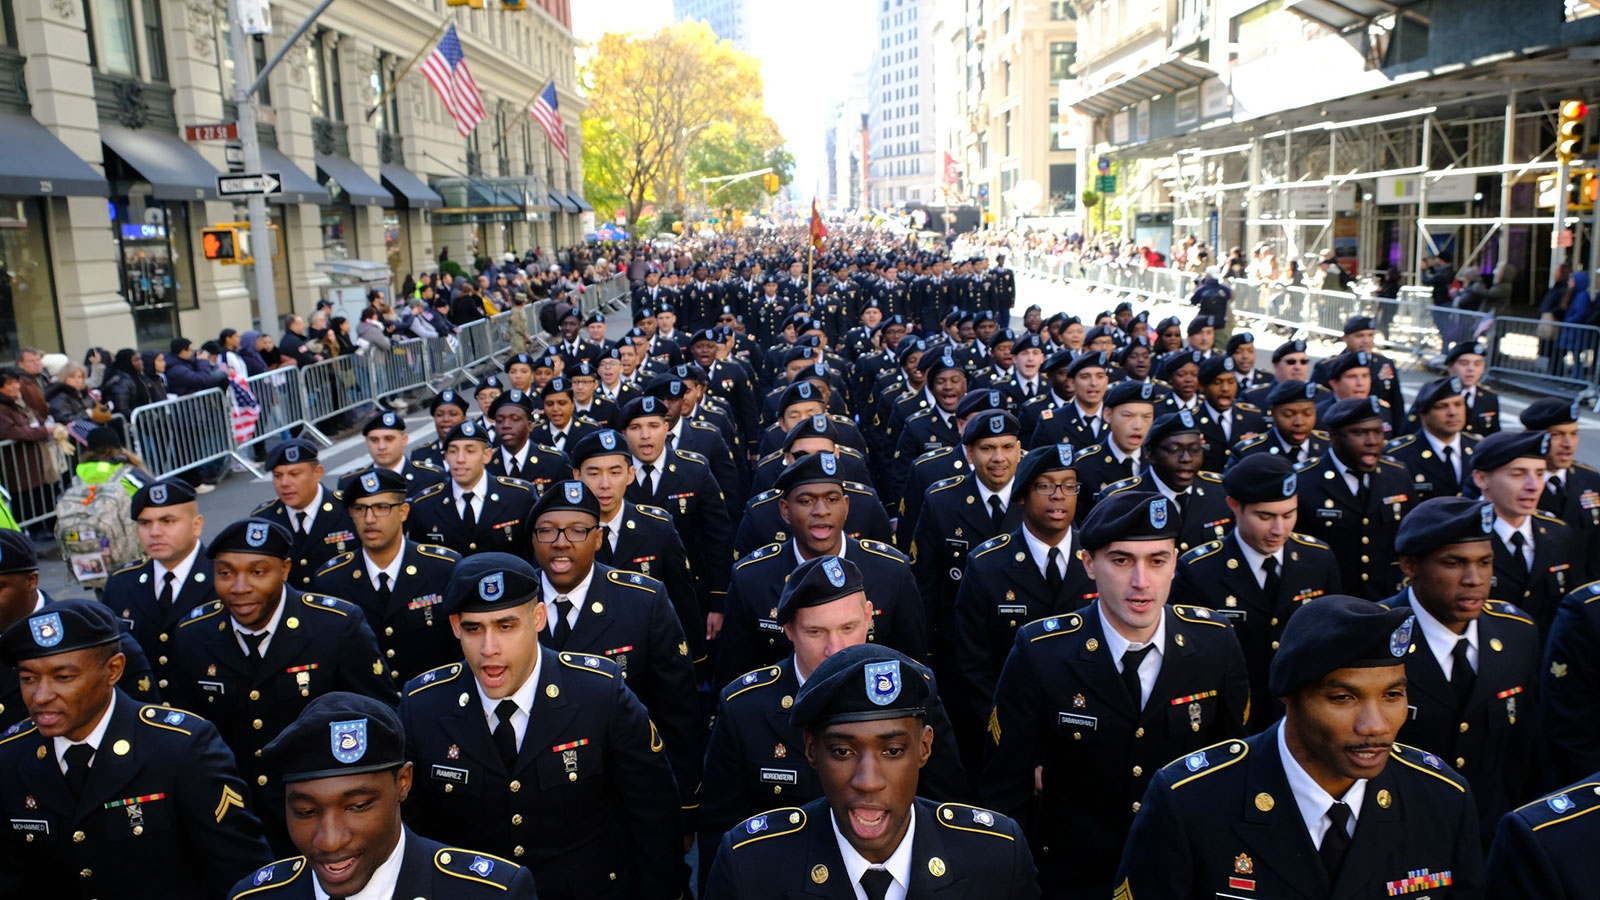 More than 25,000 people many of them veteran's and active-duty military members, march up Fifth Avenue to pay gratitude to those who have served and are serving in the United States military for New York City's annual Veteran's Day Parade.